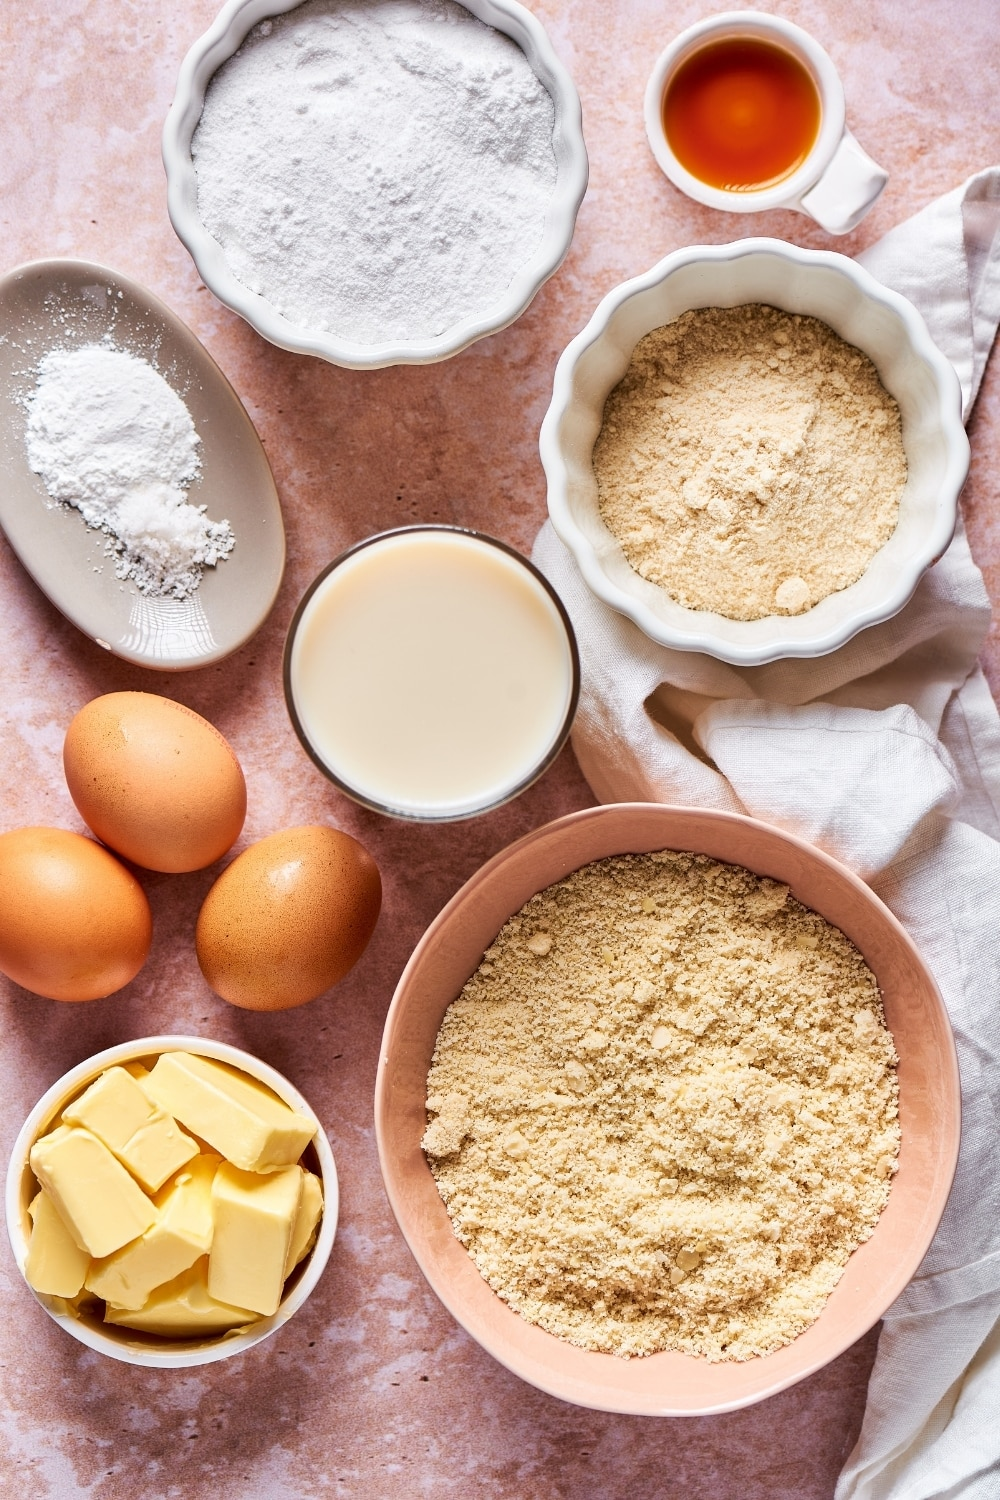 Ingredients for keto cake. There is a medium bowl with almond flour, a bowl with sticks of butter, three eggs in front of that, a cup of milk next to the eggs, a small bowl of coconut flour, a small bowl of vanilla extract, an oval dish of baking powder, and a small white dish of confectioner erythritol.